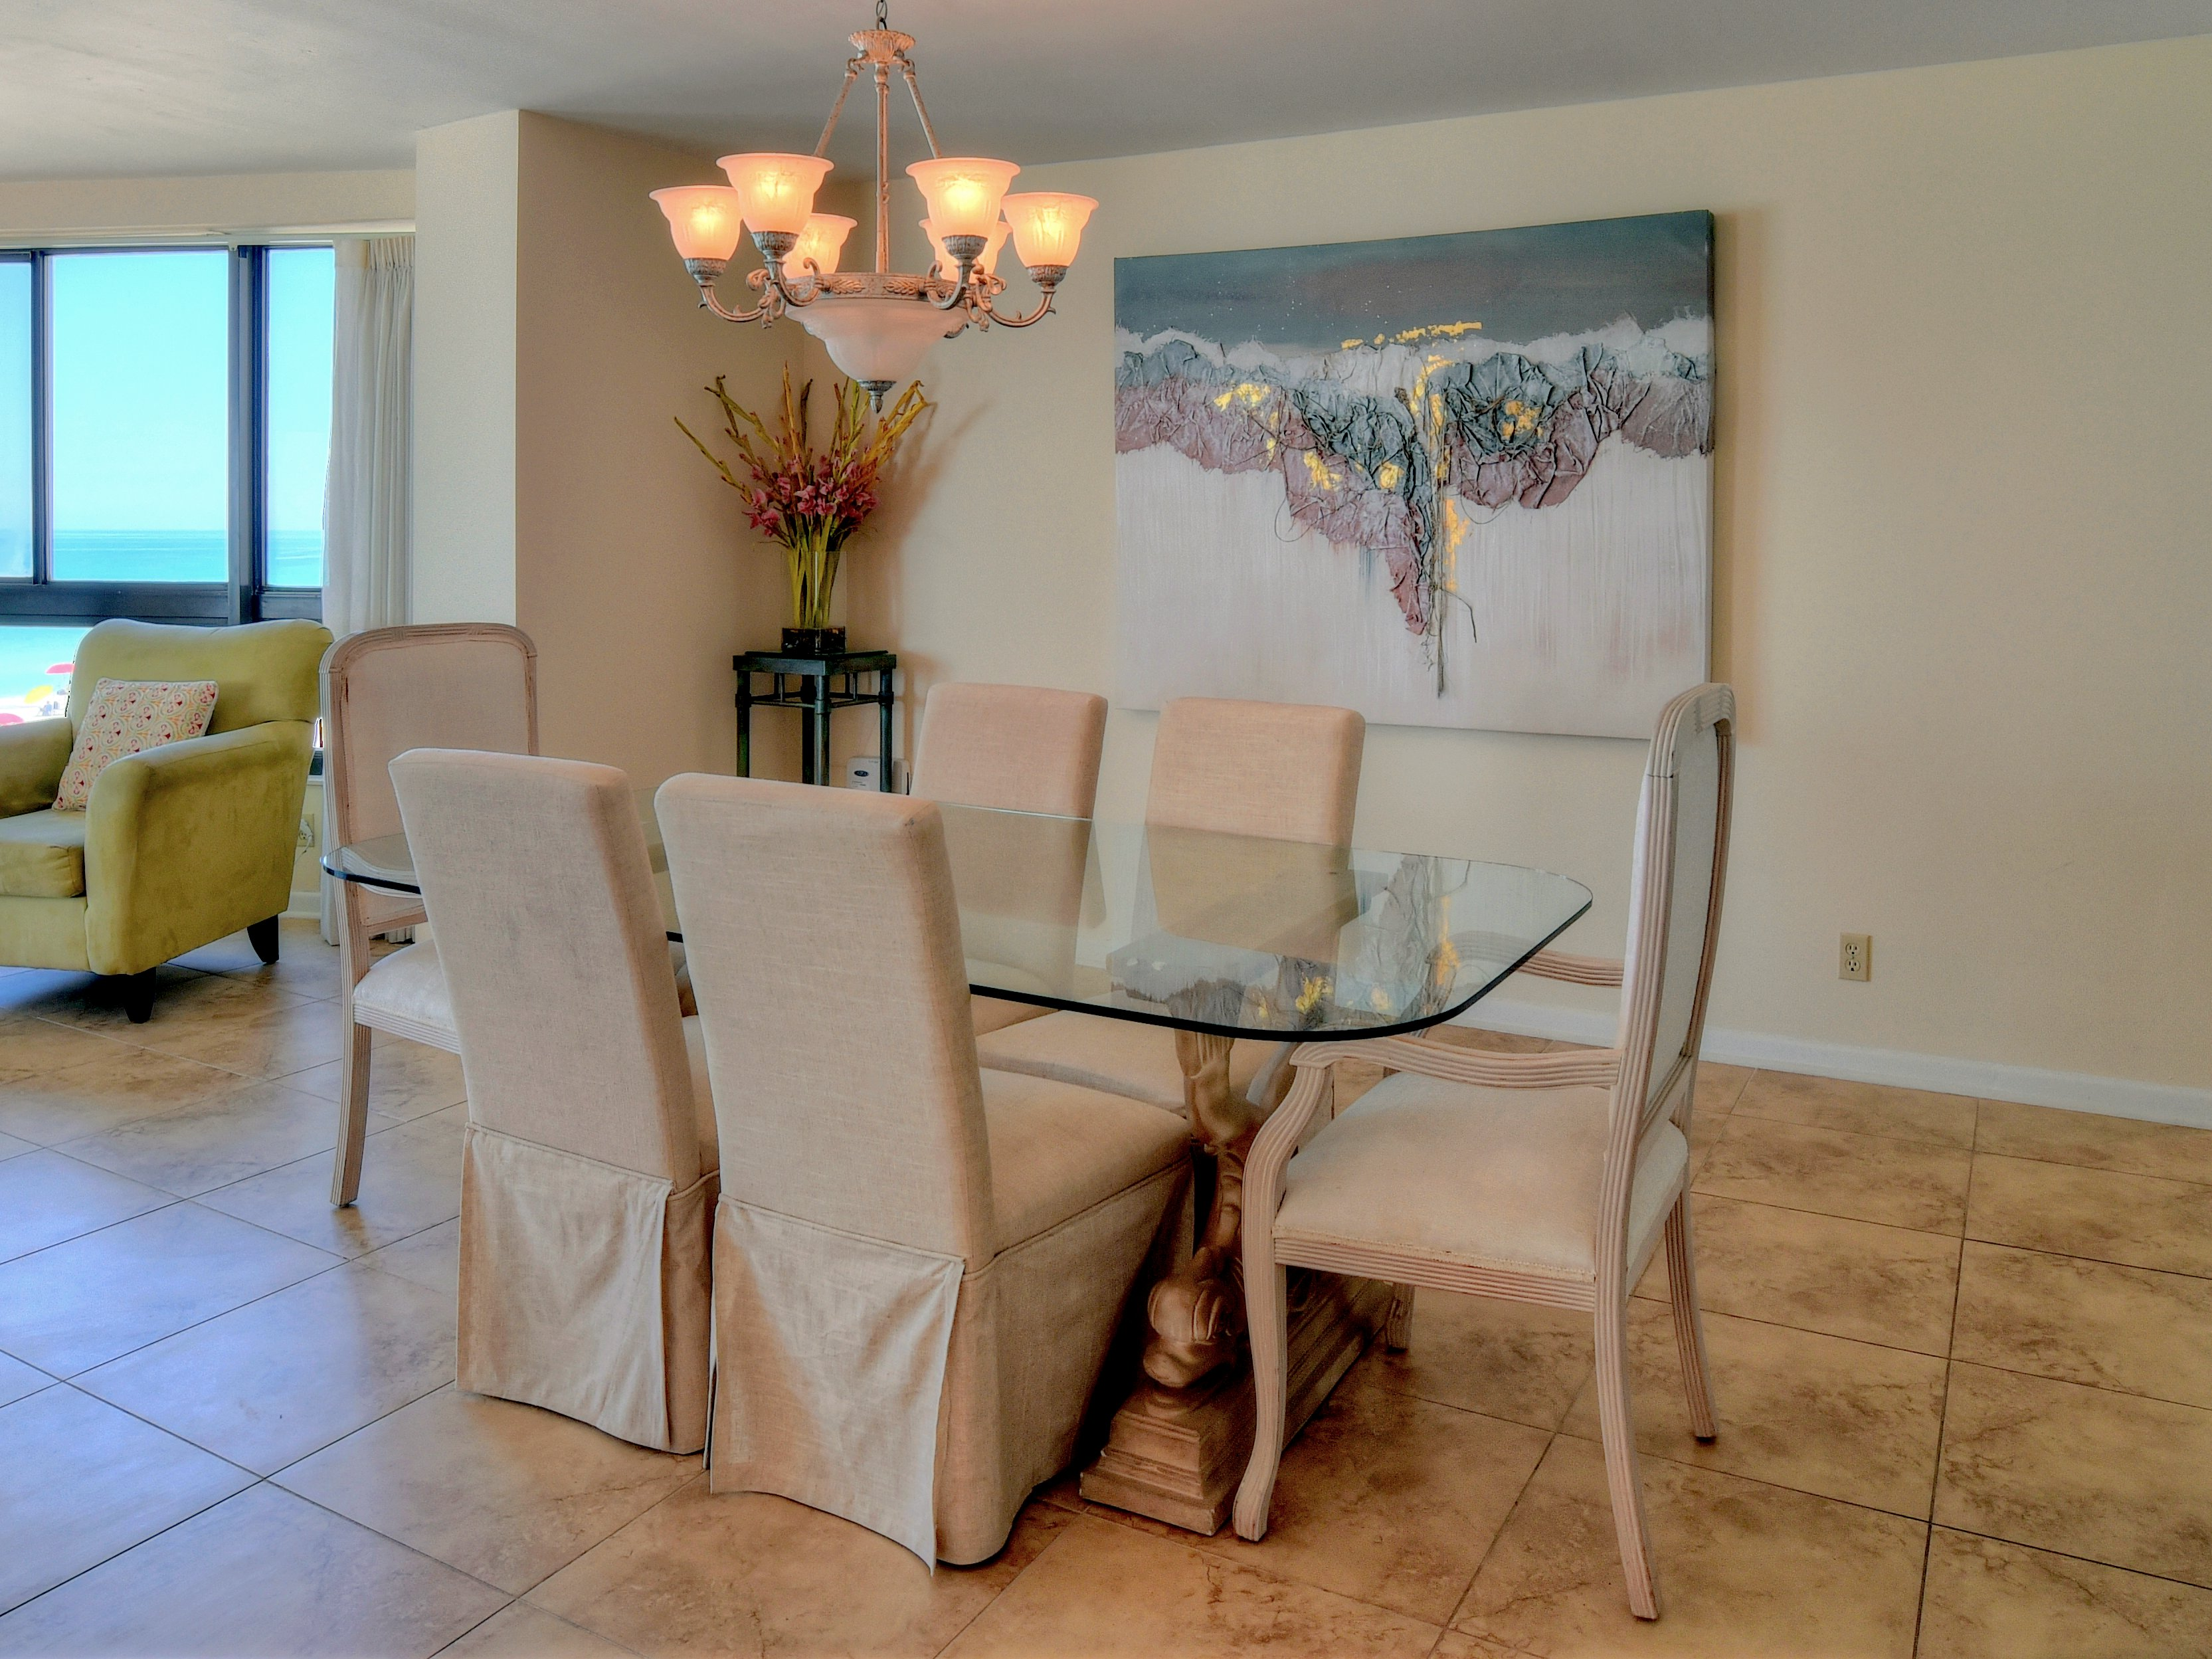 4243 Beachside Two Condo rental in Beachside Towers at Sandestin in Destin Florida - #3